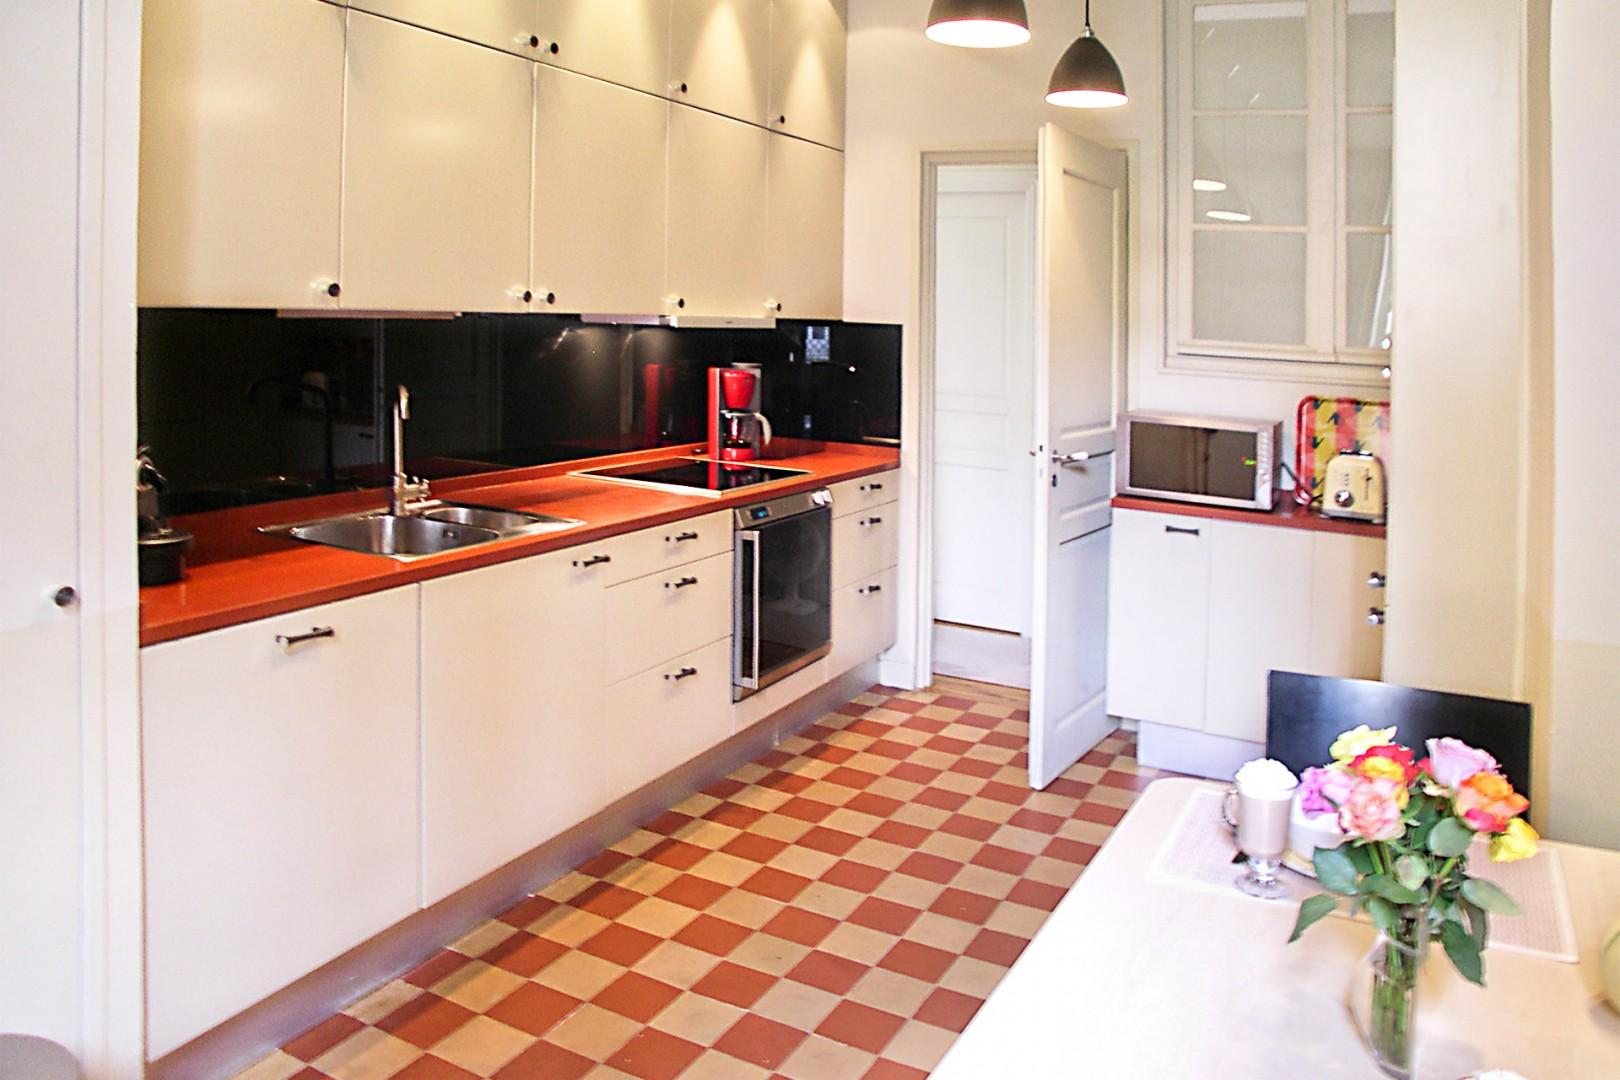 Enjoy cooking in this elegant kitchen with stylish checkerboard tiles.